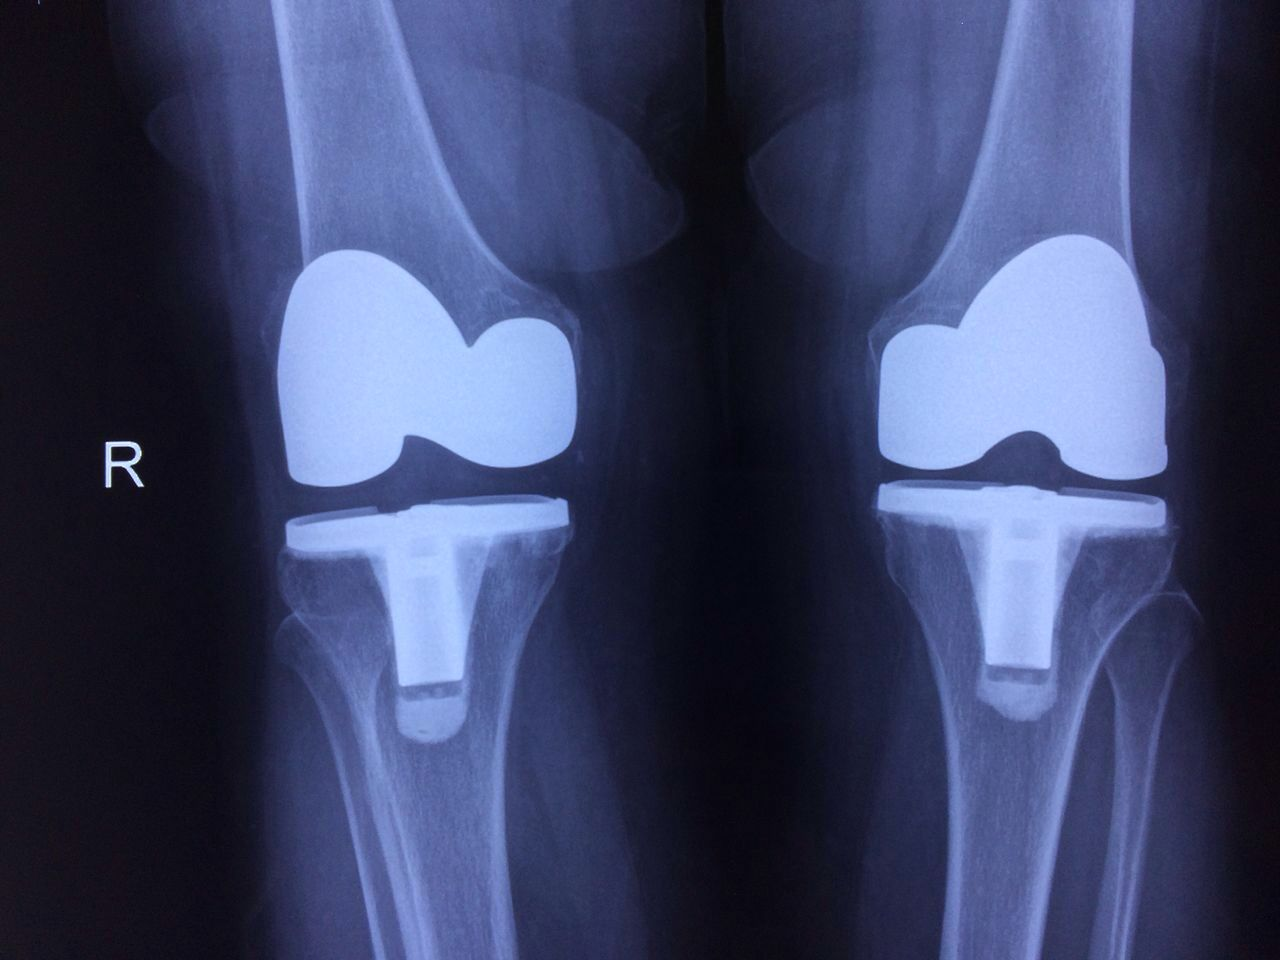 TKR with ROBONAVIGATION | Total knee replacement